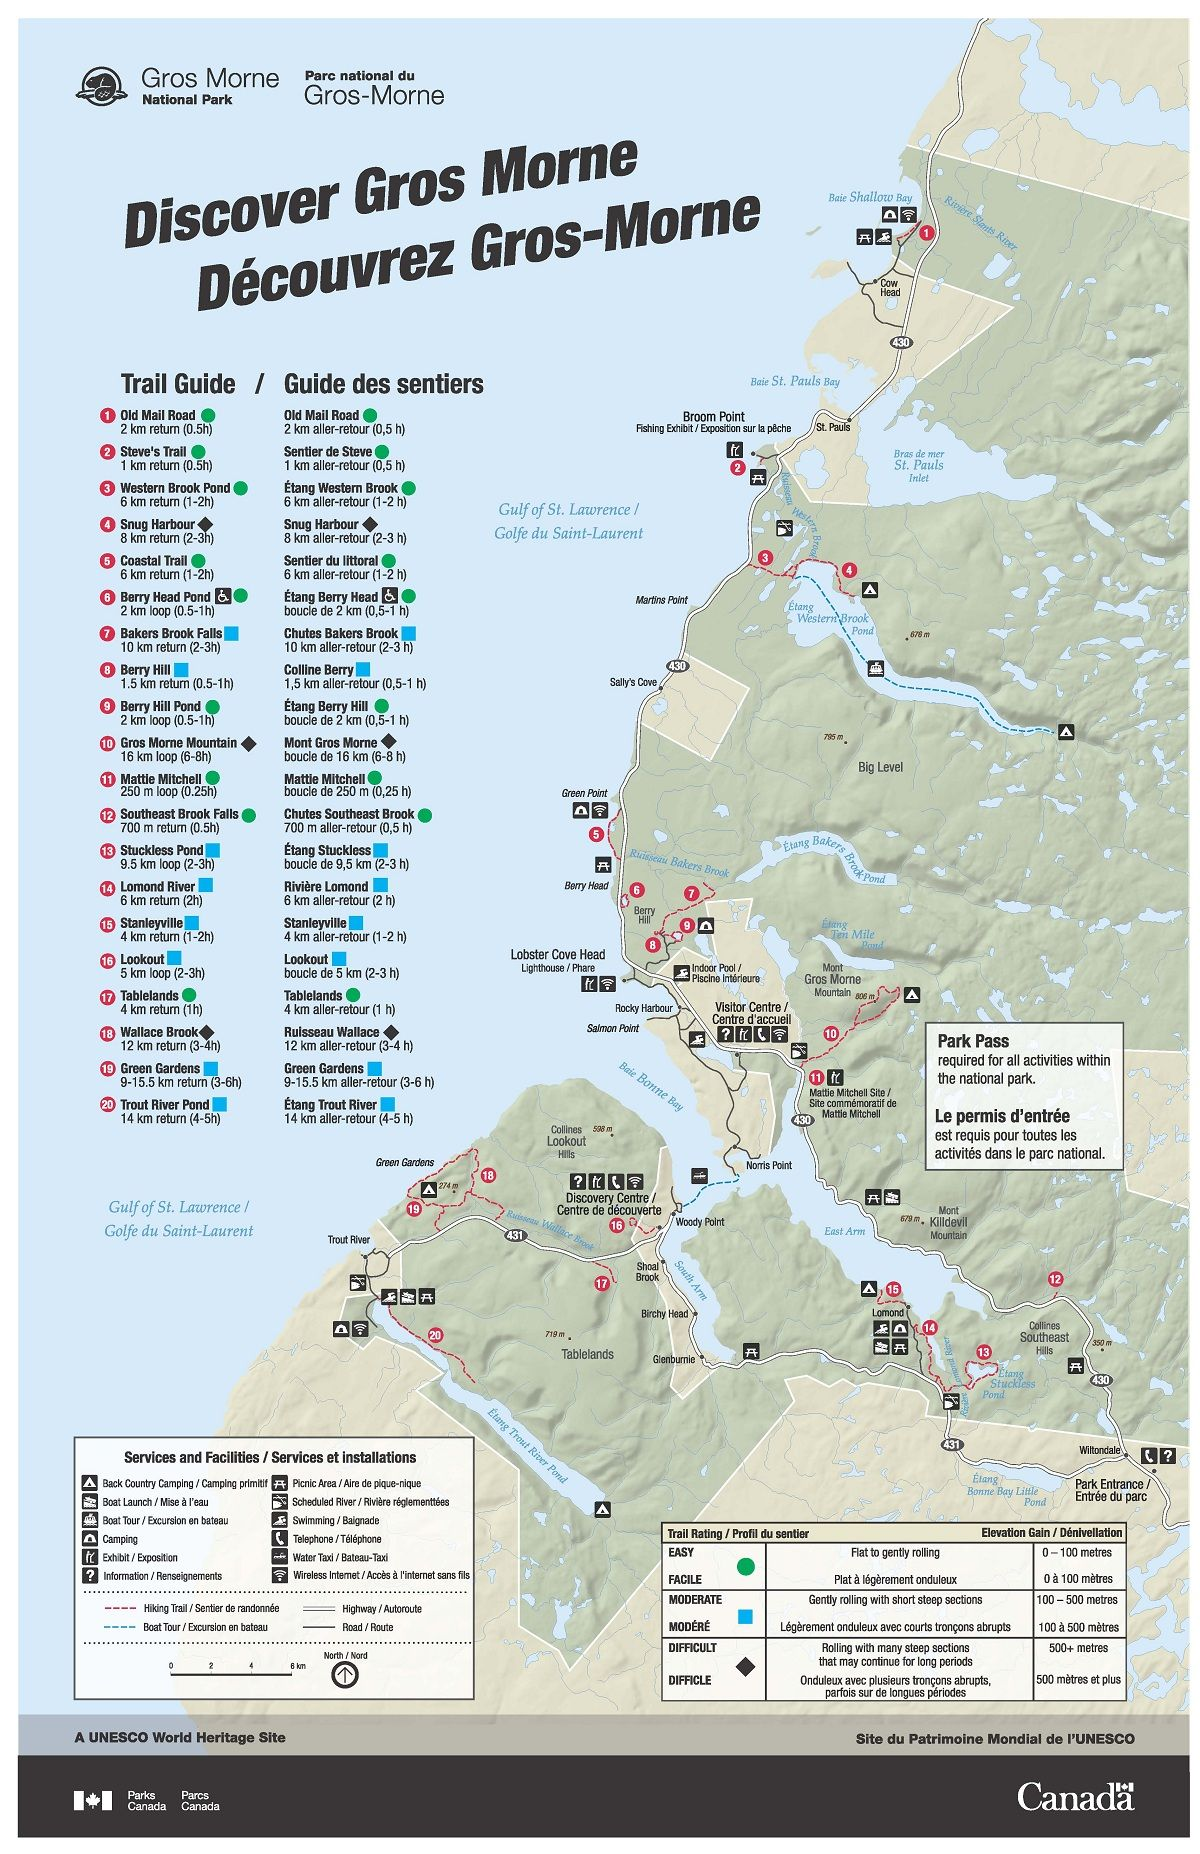 Parks canada gros morne national park map canada pinterest parks canada gros morne national park map gumiabroncs Gallery